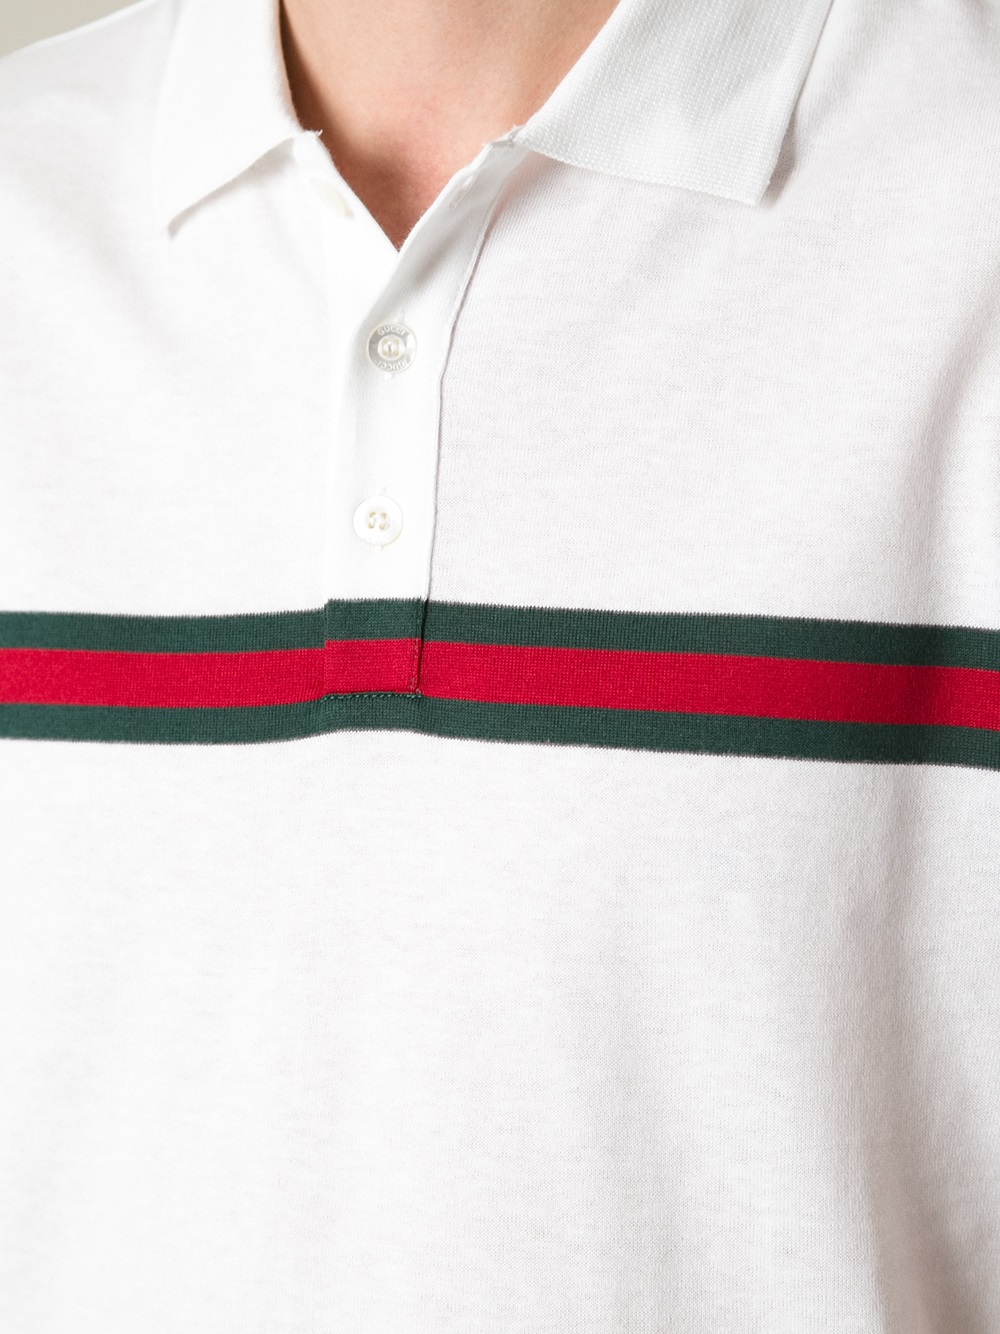 d30bbde1963 Lyst - Gucci Short Sleeve Polo Shirt in White for Men